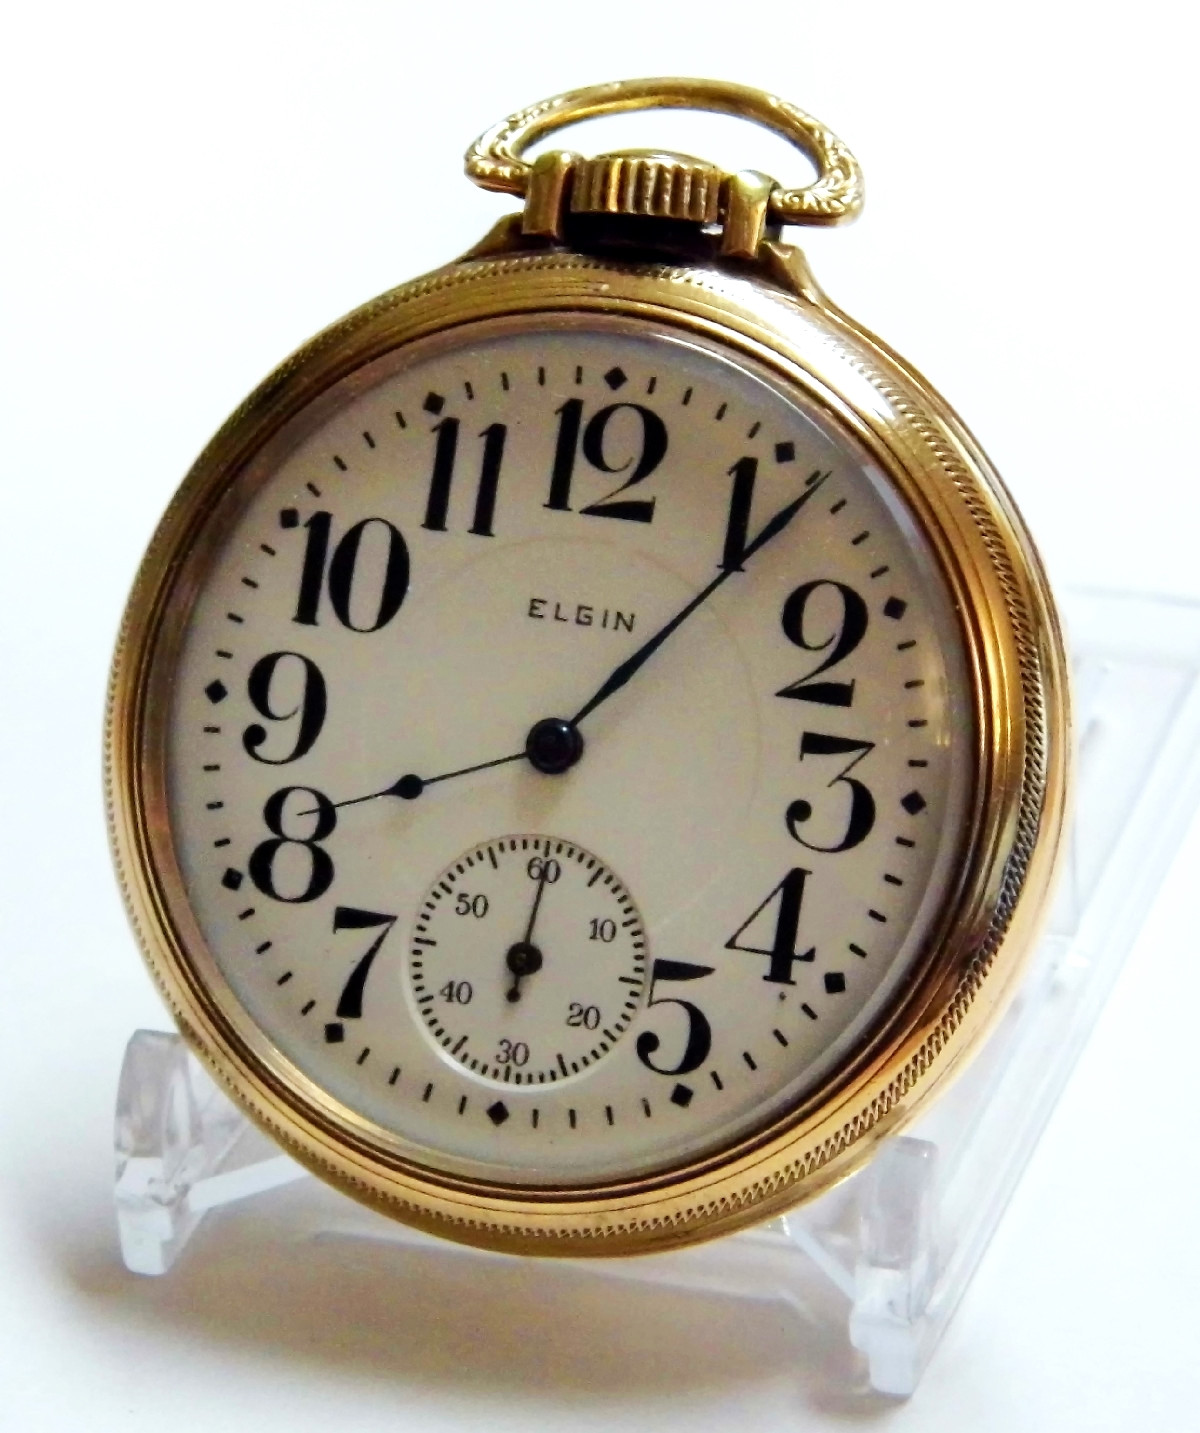 Vintage Elgin National Watch Company Pocket Watch, 17 Jewels, Lever Set, 10 K Gold Filled Open Face Case Marked 'Hamilton Keystone Watchcase, J. Boss, Railroad Model', Circa 1918. Credit Joe Haupt